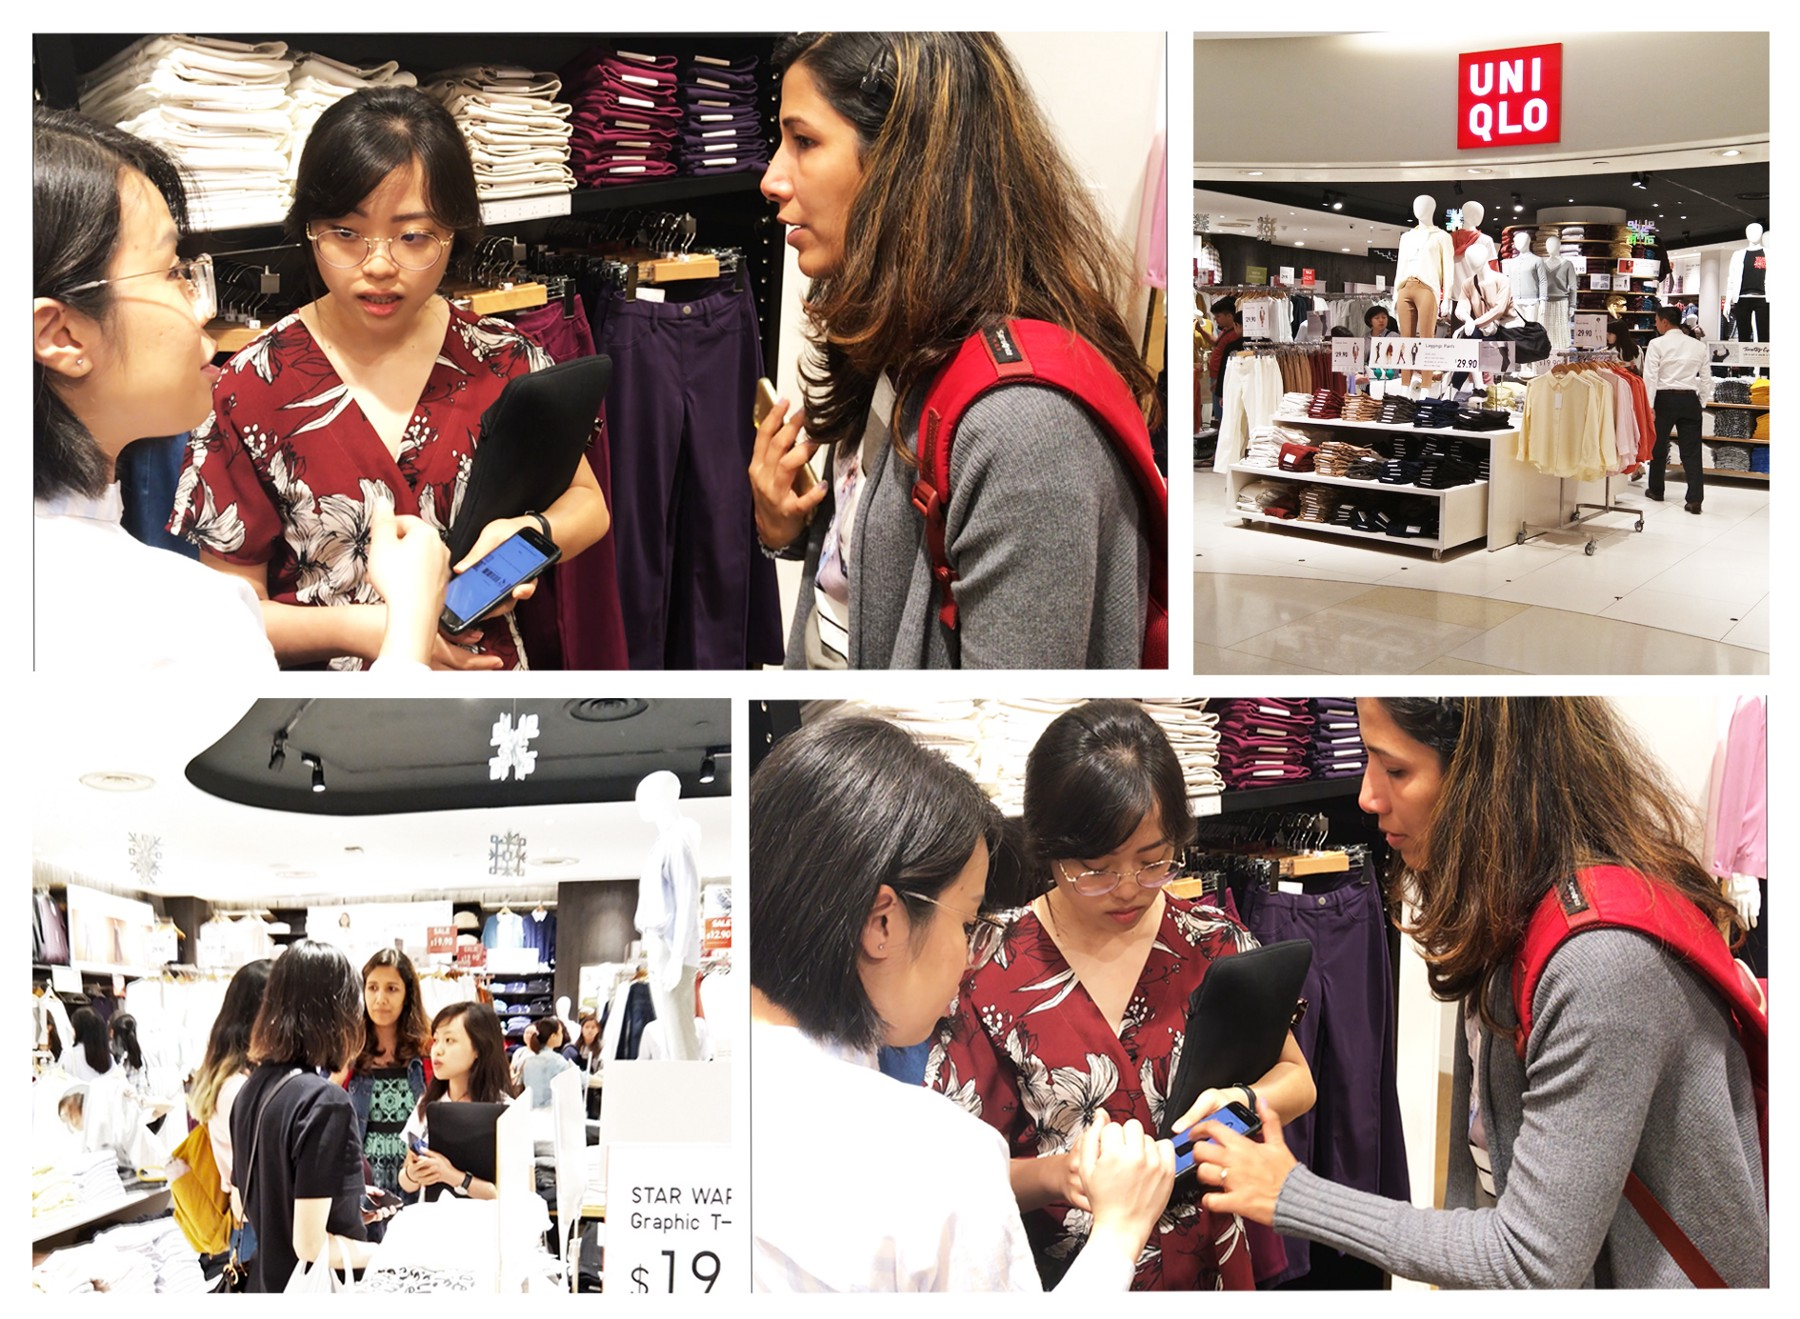 Uniqlo Self-Checkout Mobile App Redesign - Contextual Inquiry - Leowhouteng